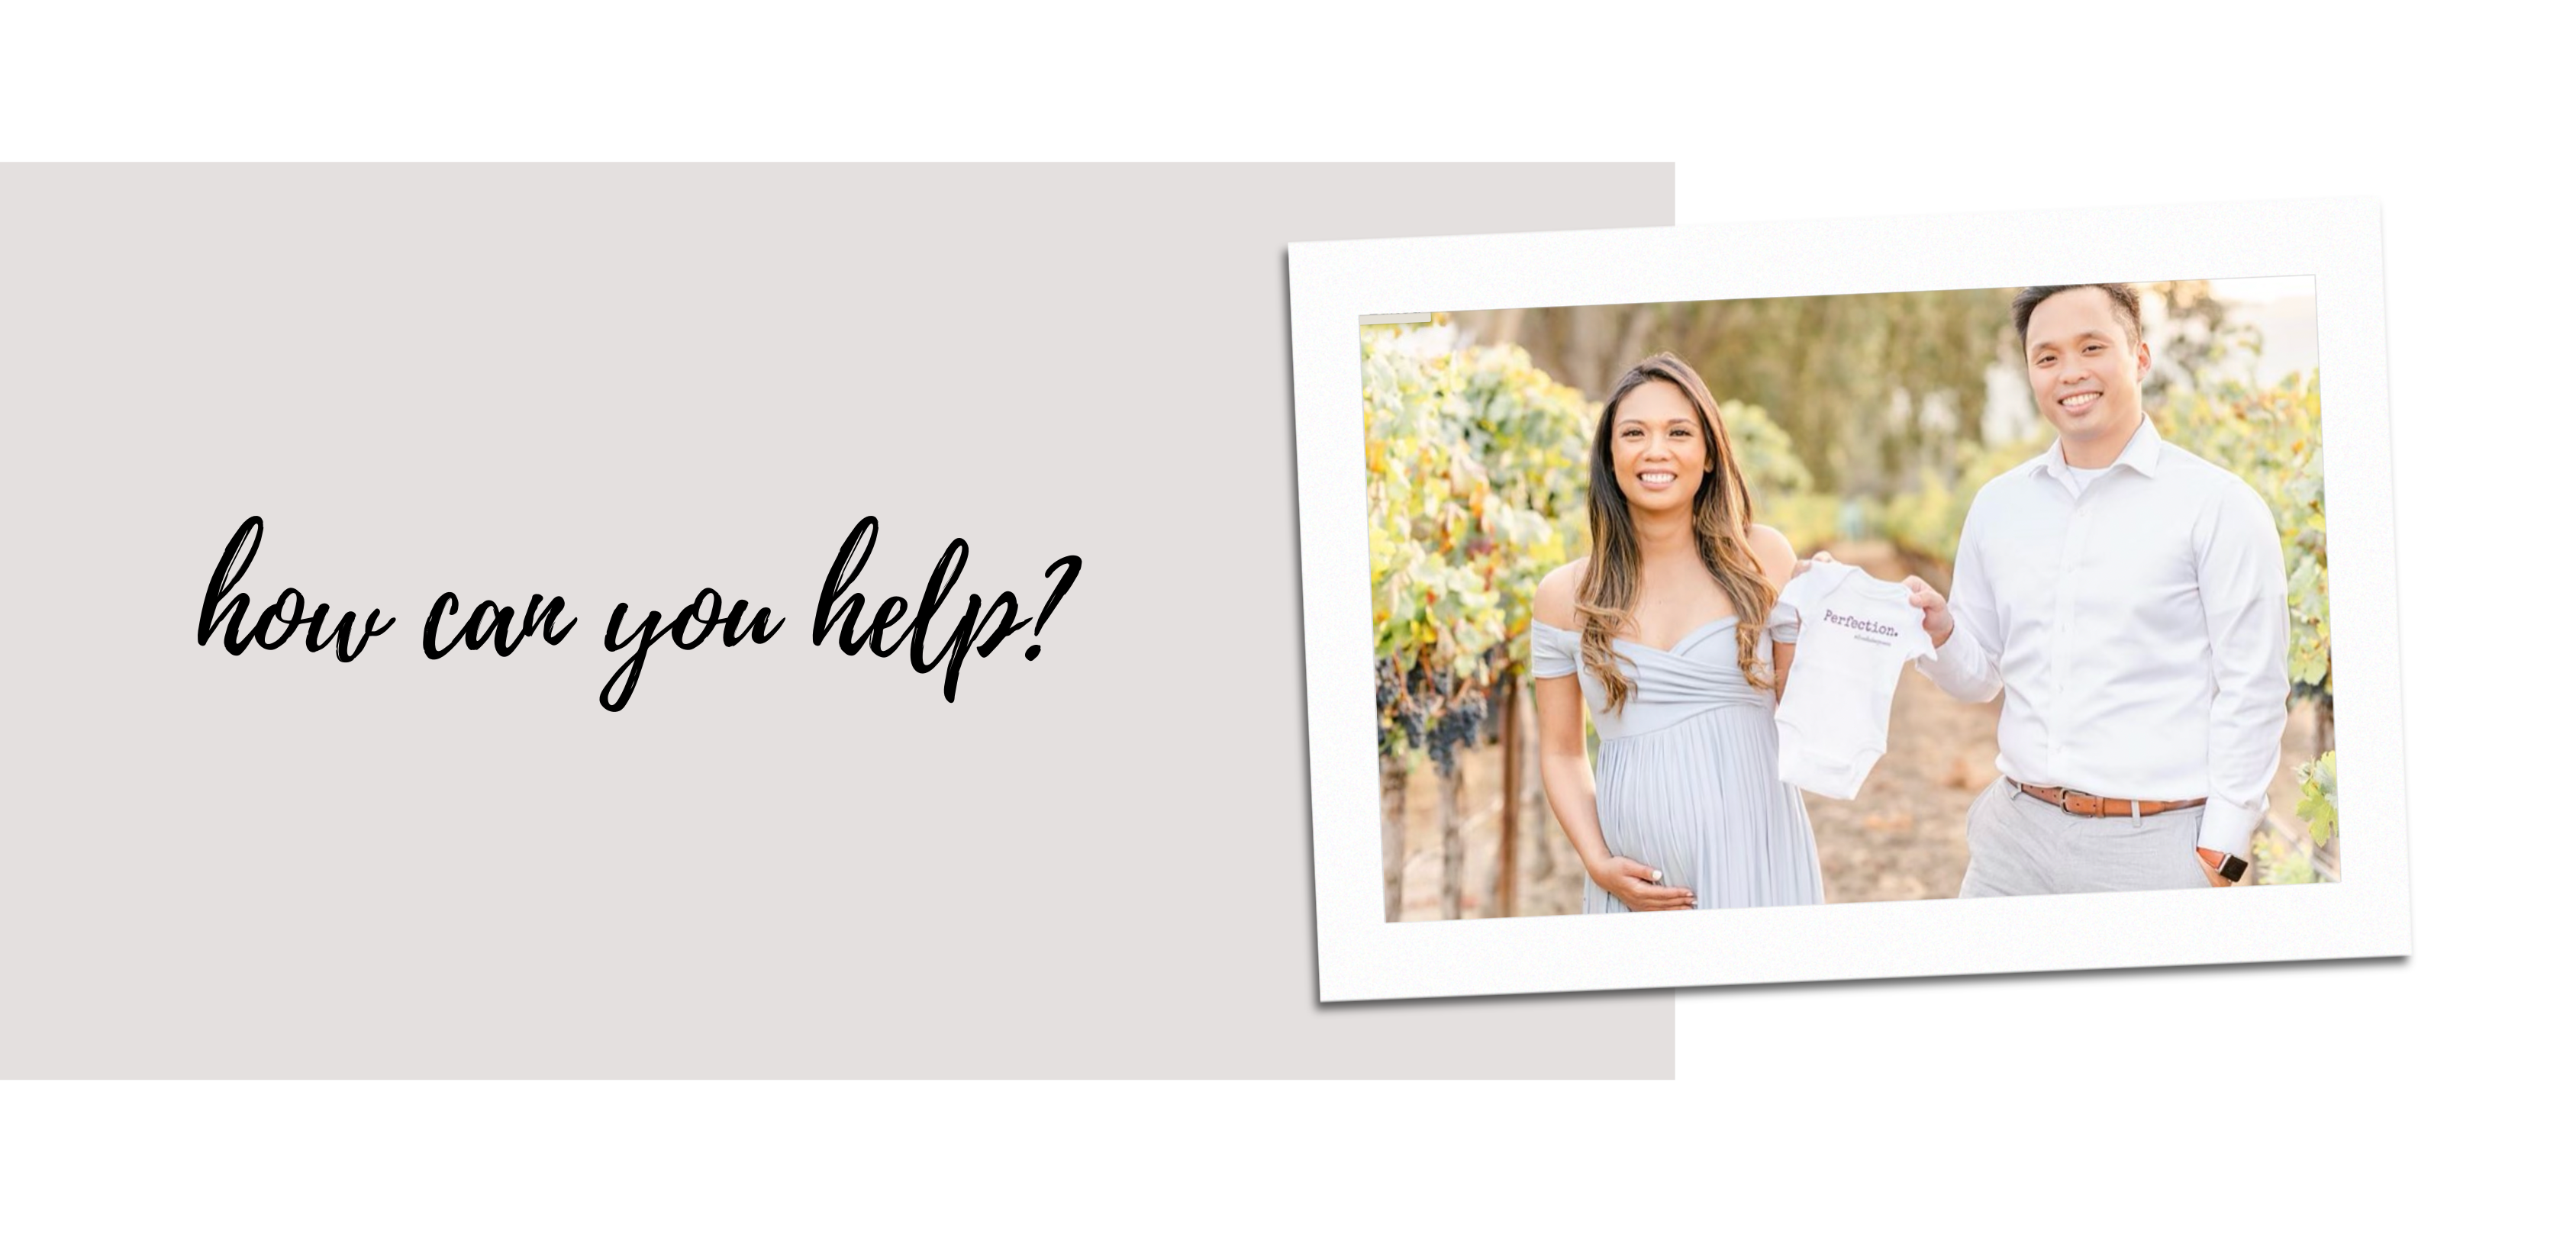 """banner that says """"How can you help?"""" in black script font with polaroid photo of couple holding a once that says perfection."""